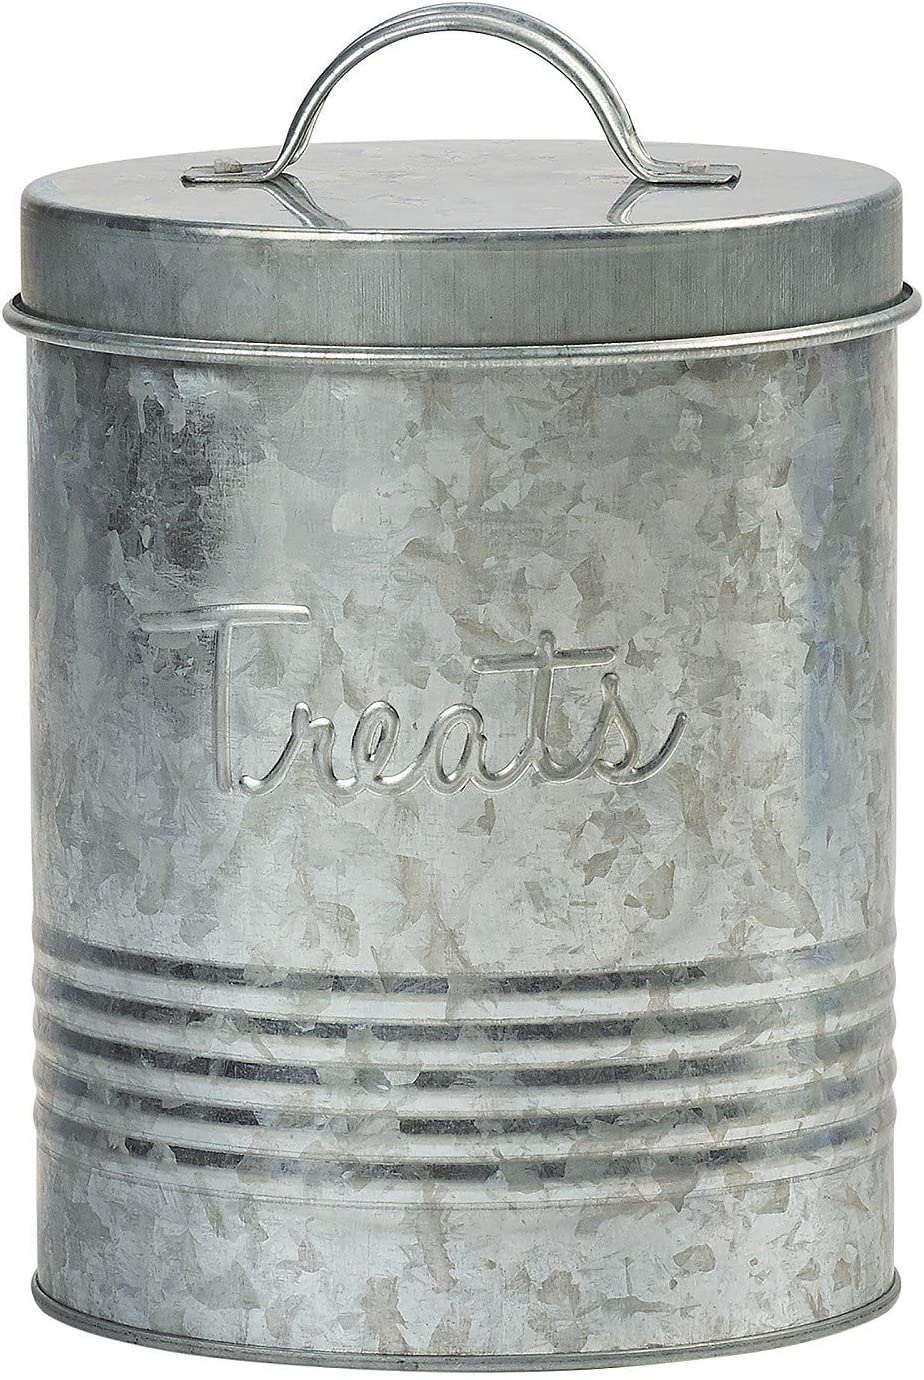 Amici Pet, , Retro Treats Galvanized Relief Lettering Metal Storage Canister, Food Safe, Push Top, 72 Ounces